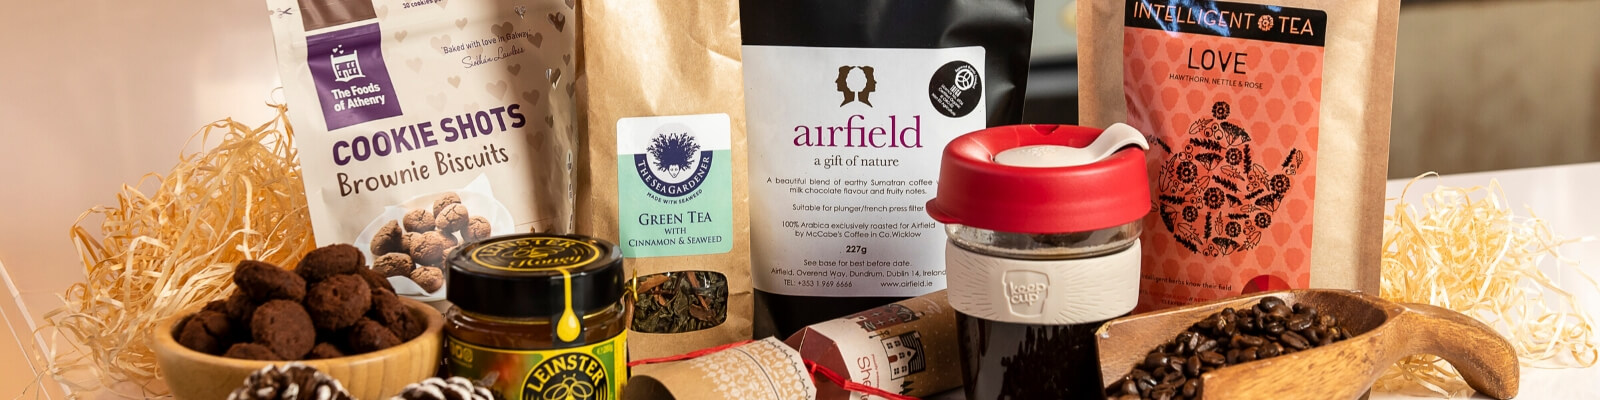 https://www.airfield.ie/wp-content/uploads/2019/10/Coffee-Lovers-Hamper-from-Airfield-Estate-1.jpg